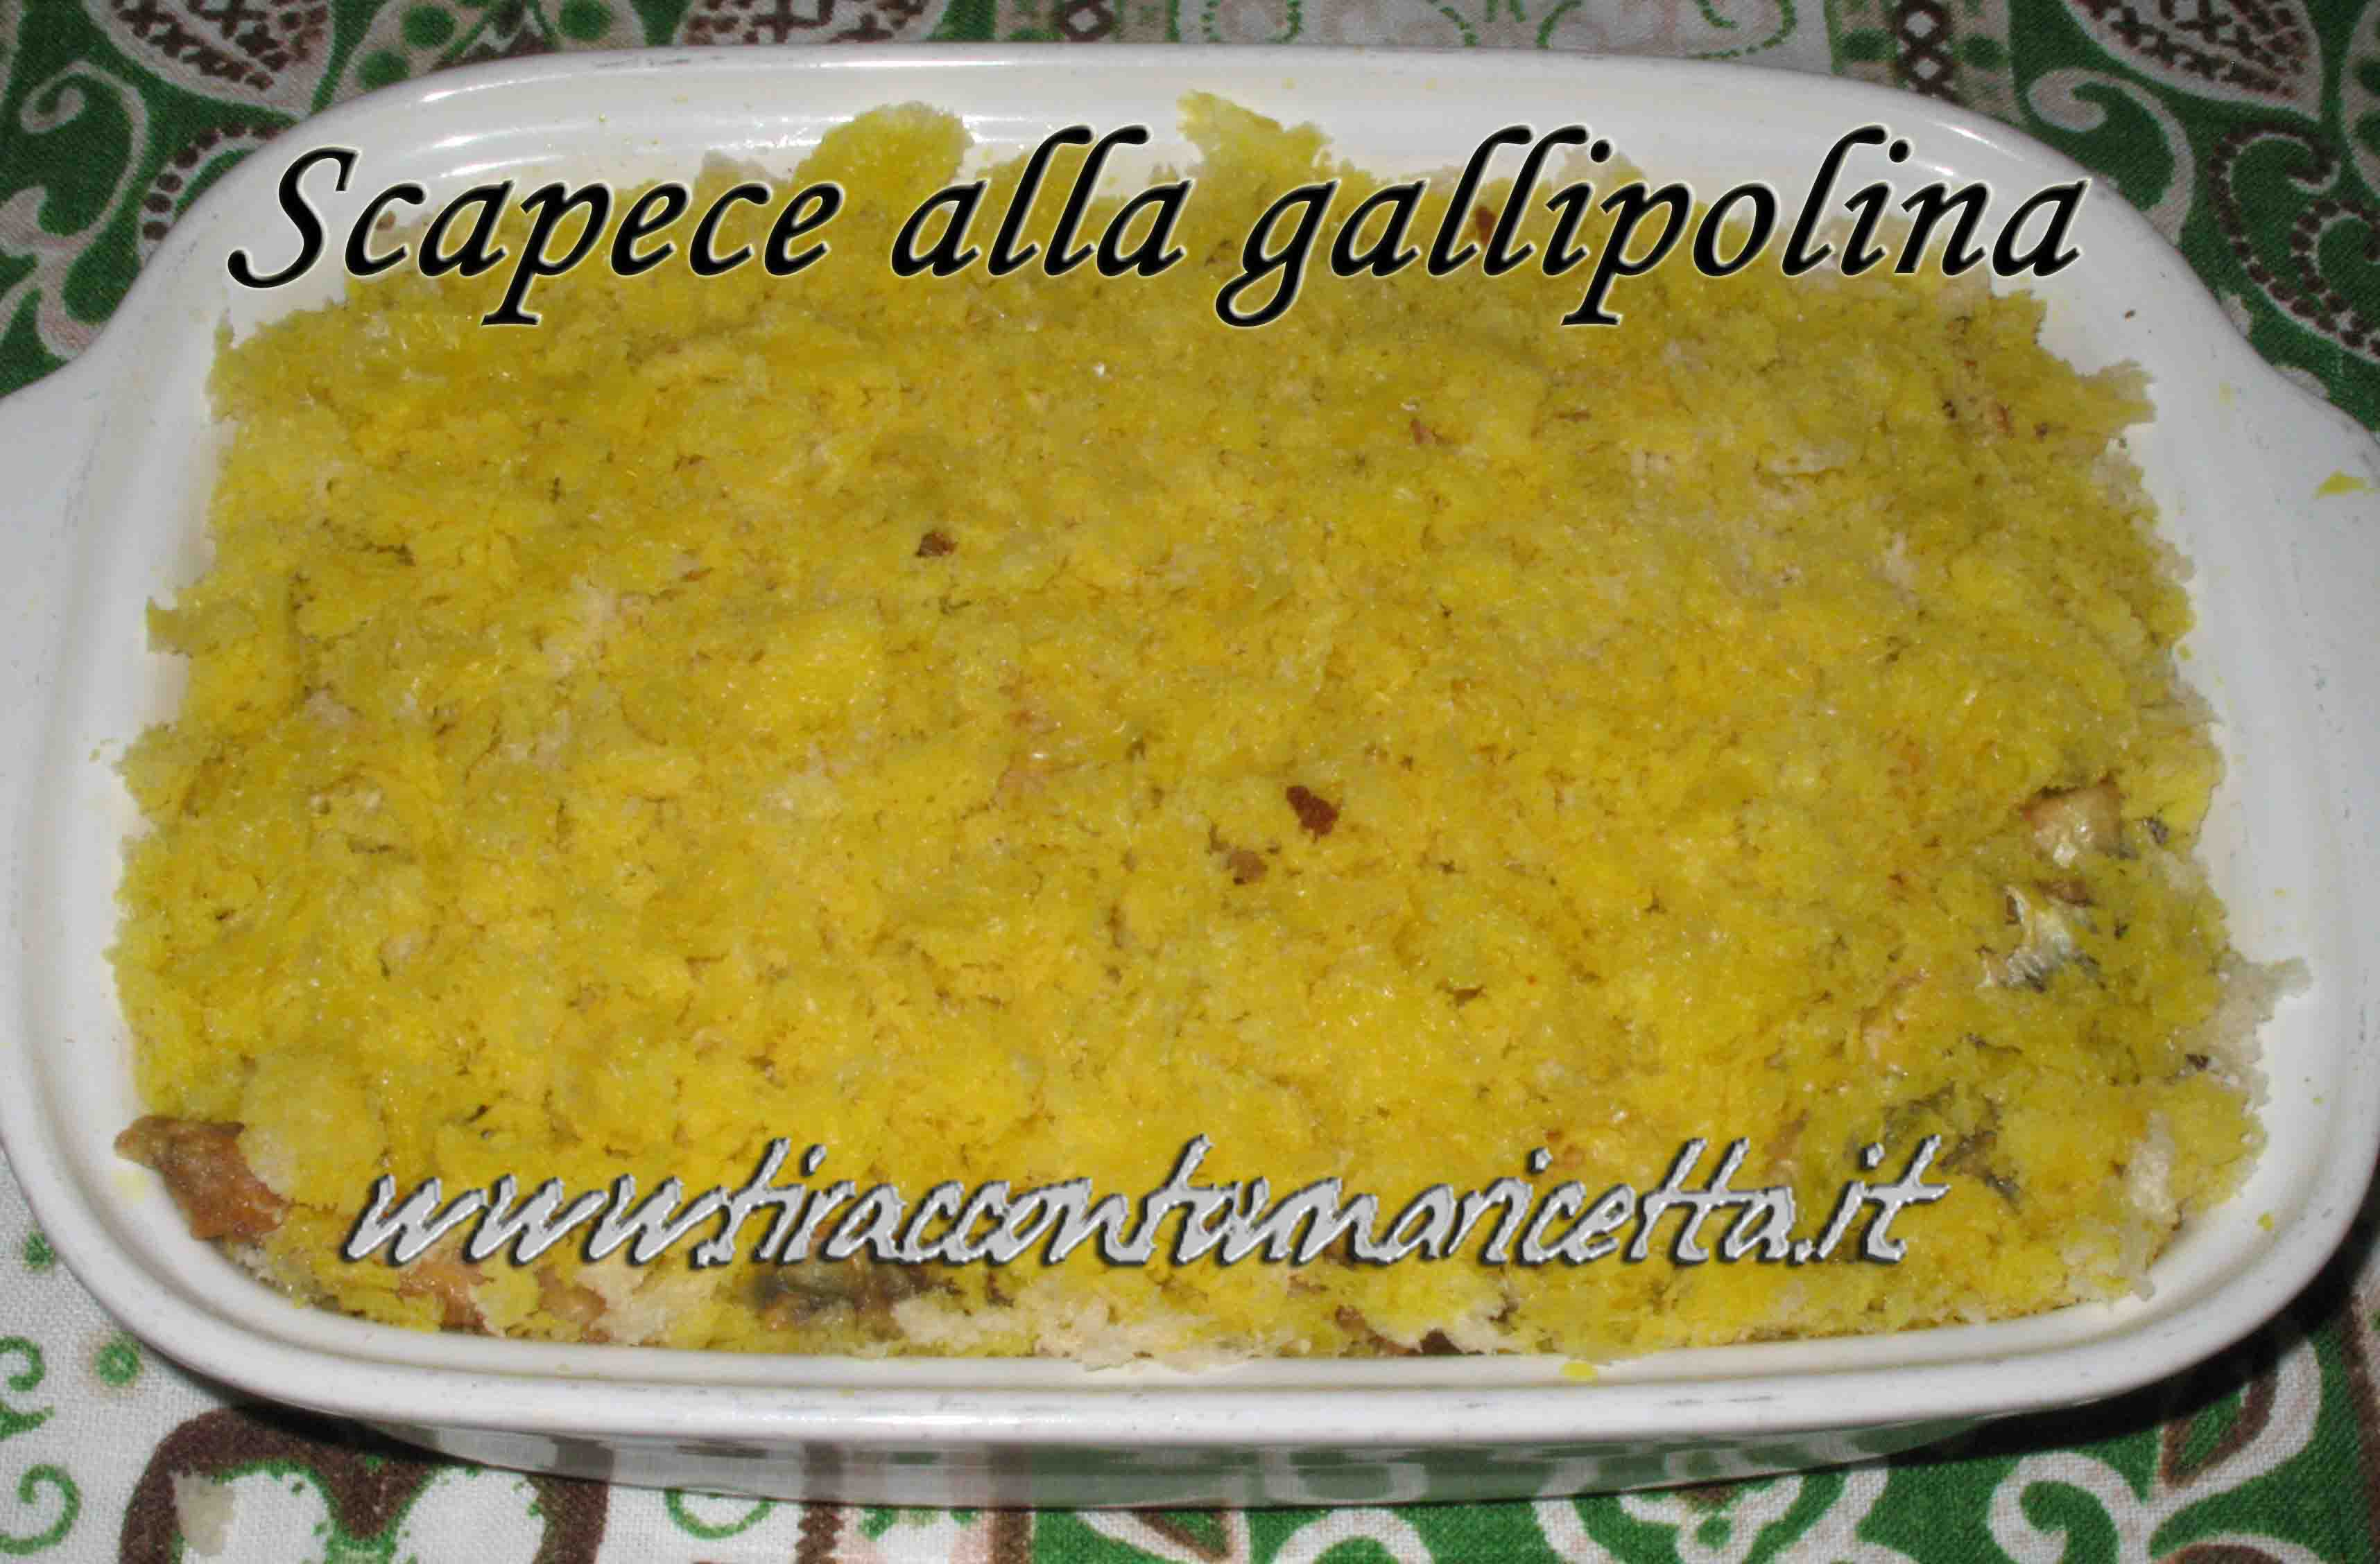 Scapece of anchovies alla gallipolina (from Gallipoli)